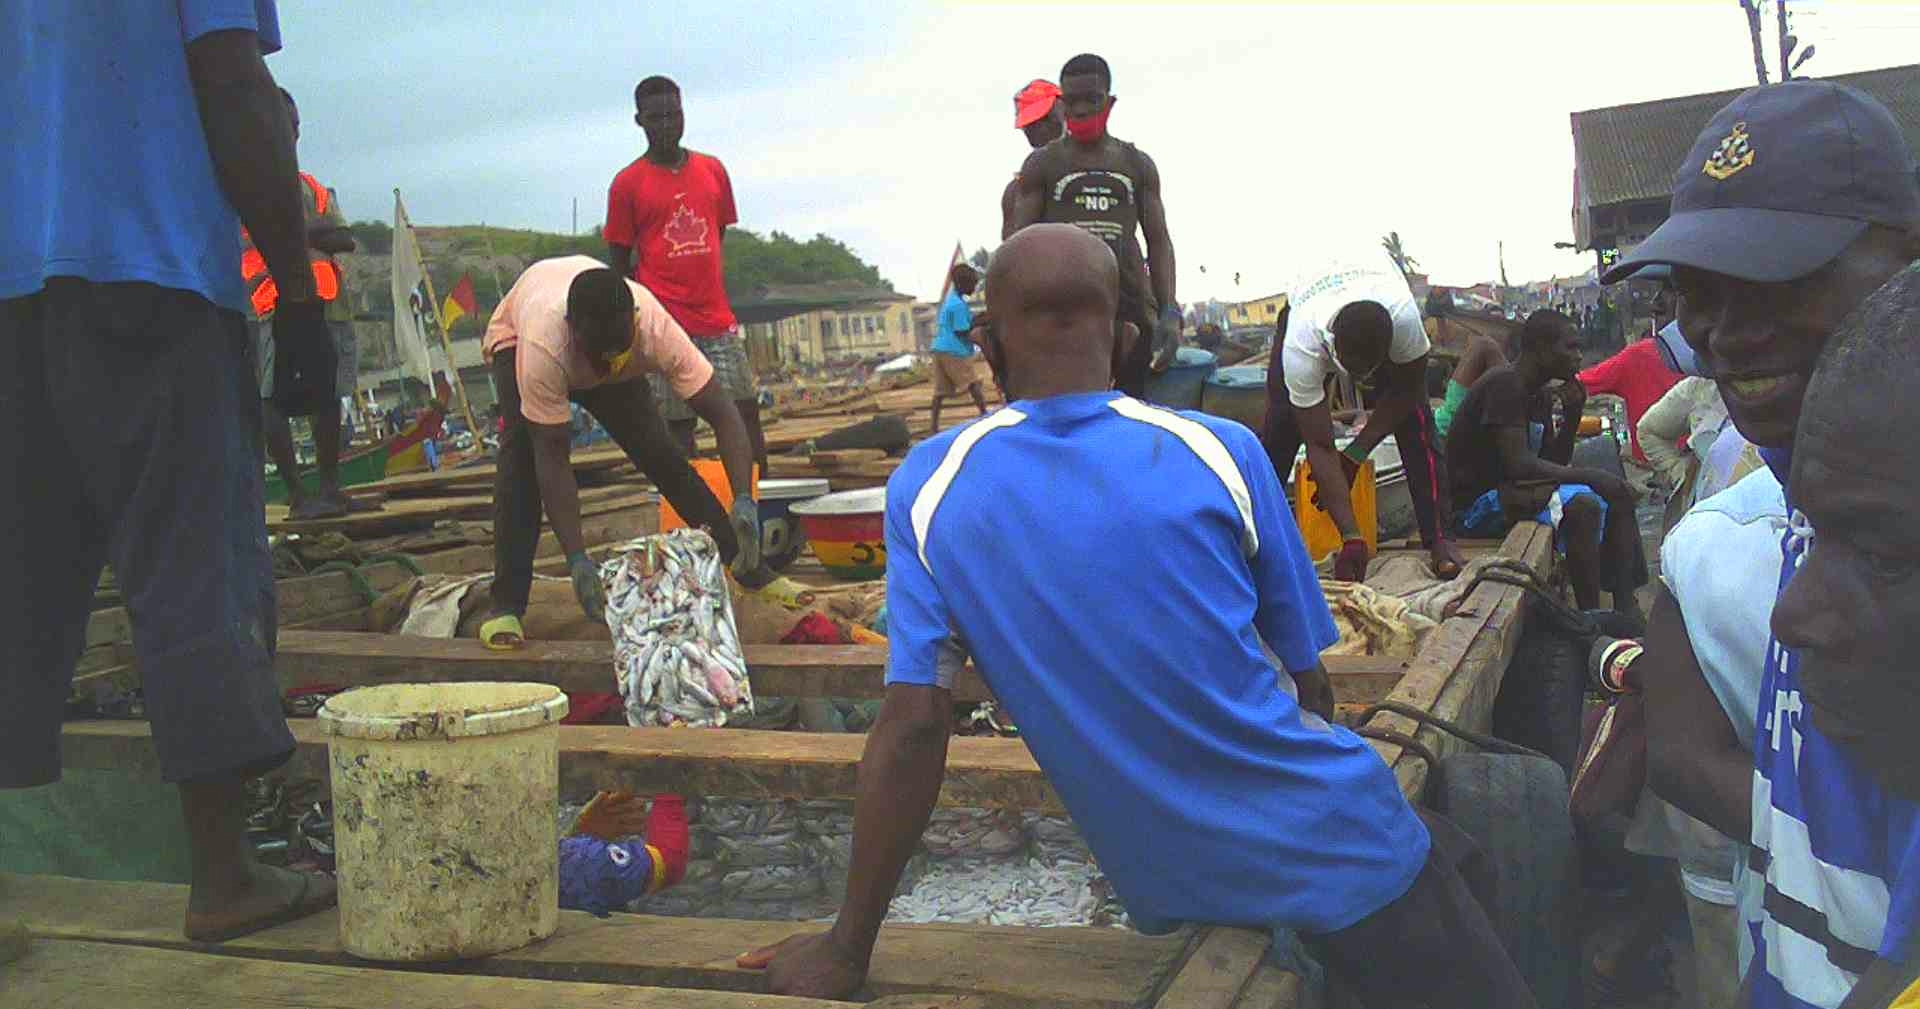 Illegal saiko fishing continues openly in Ghana despite government assurances